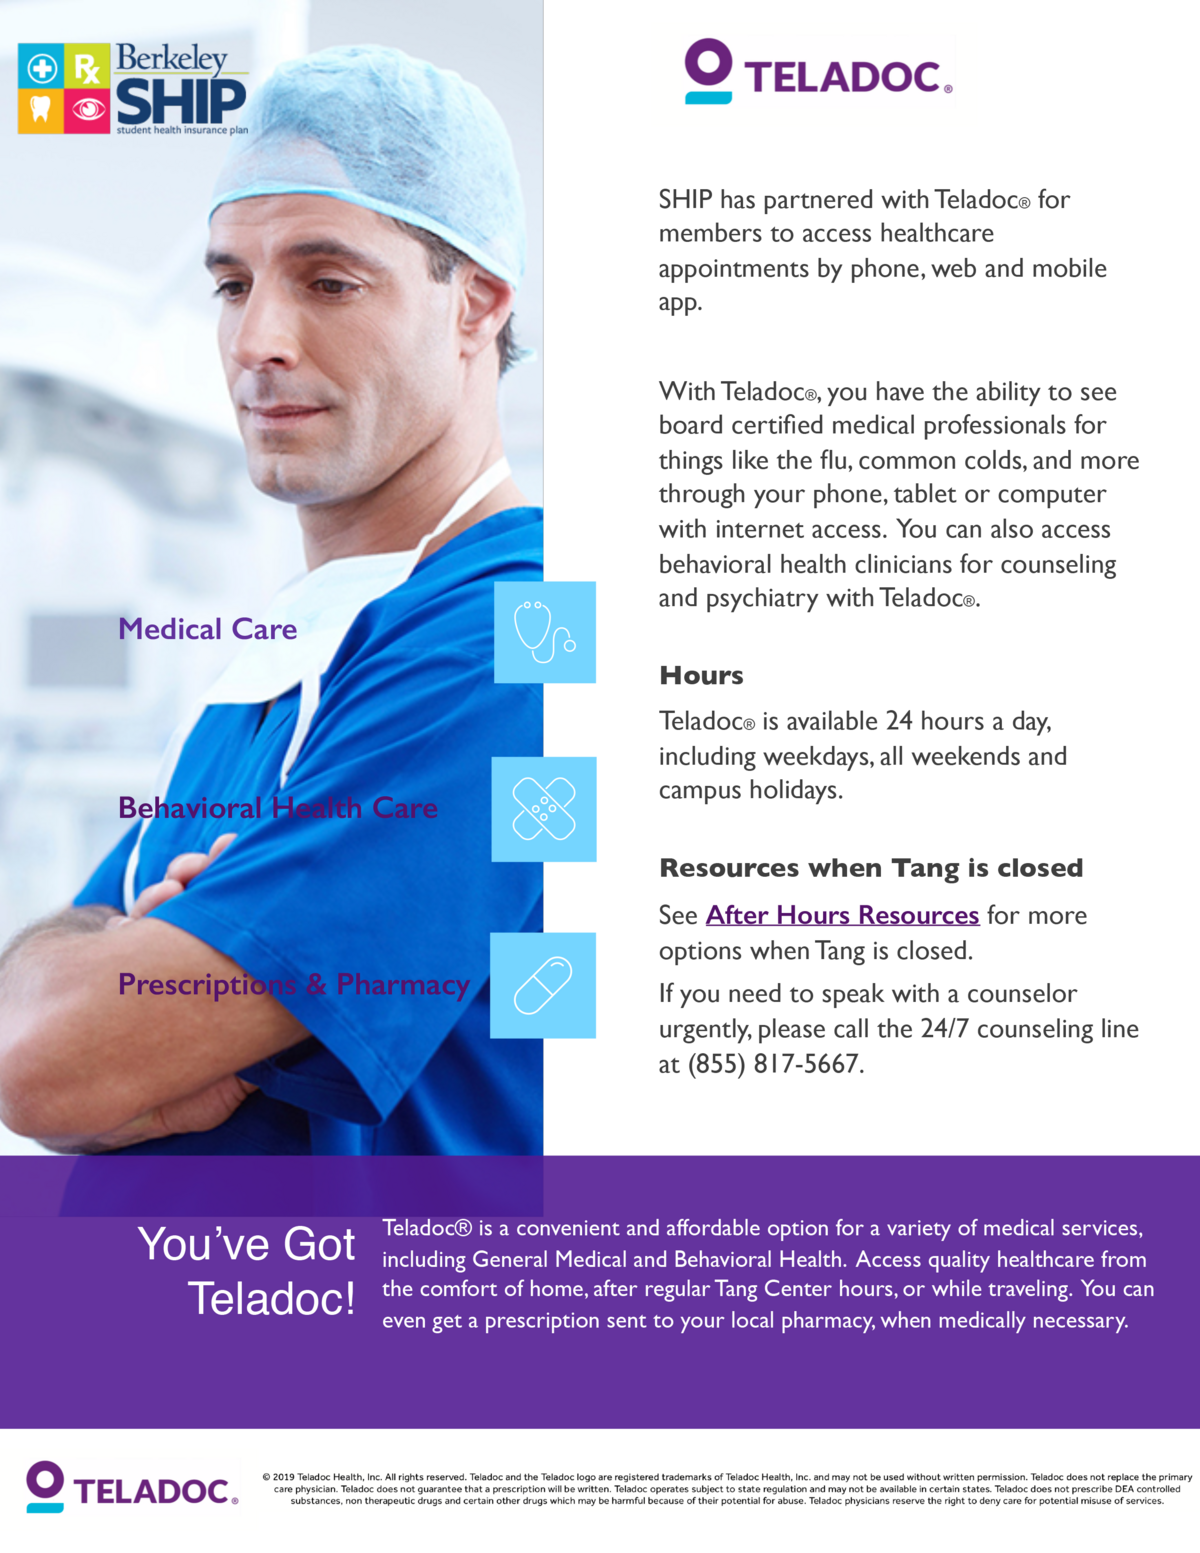 Local Emergency and Urgent Care Centers (Off Campus